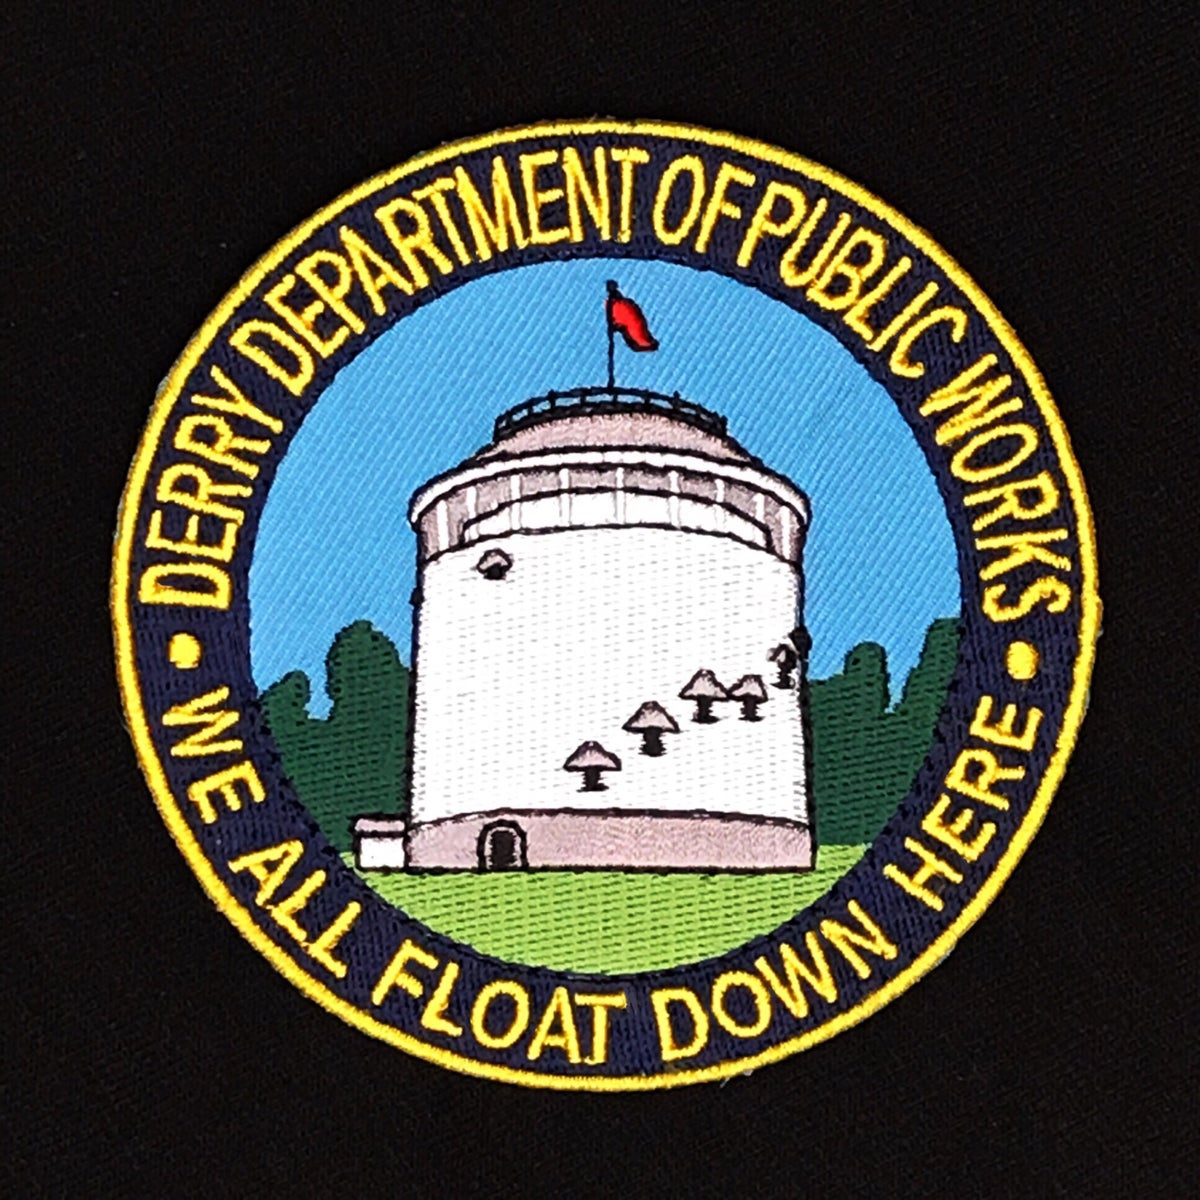 Derry Department of Public Works Uniform Patch